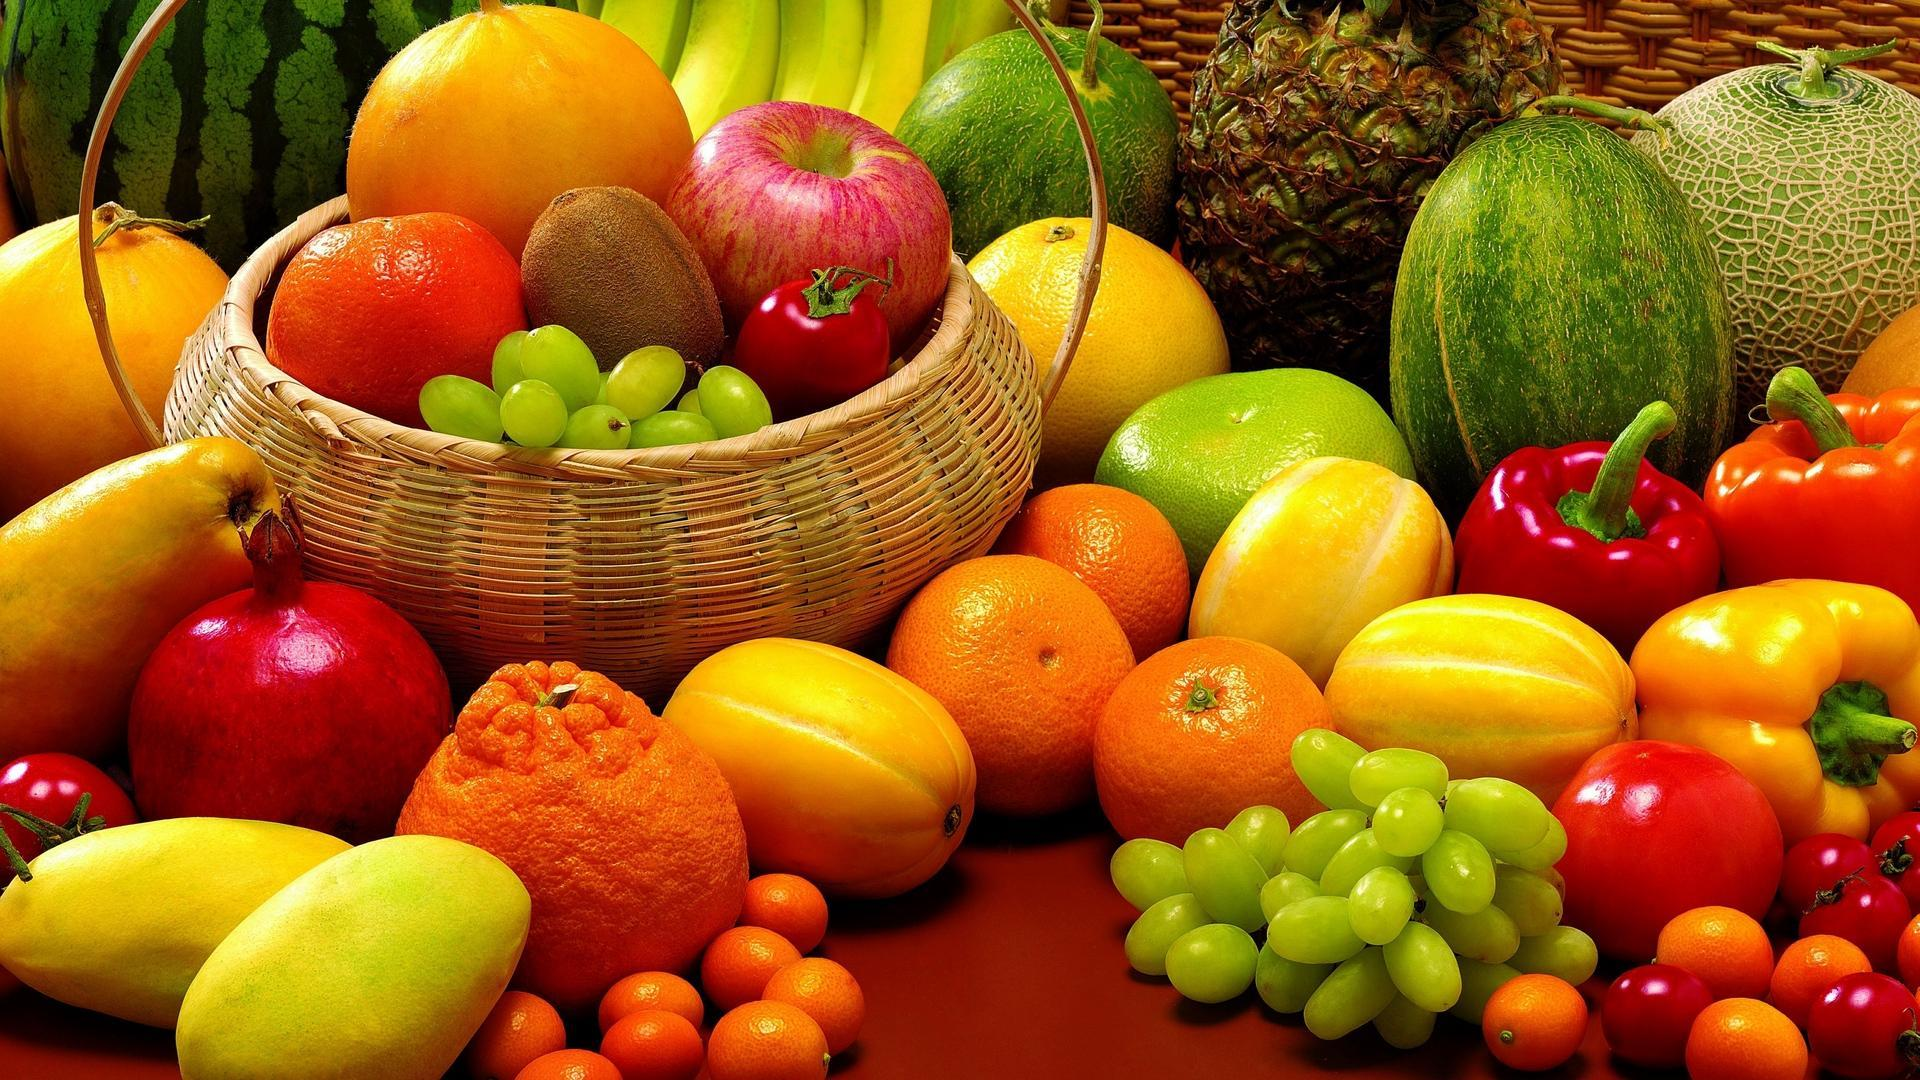 Fruits Live Wallpaper for Android - APK Download